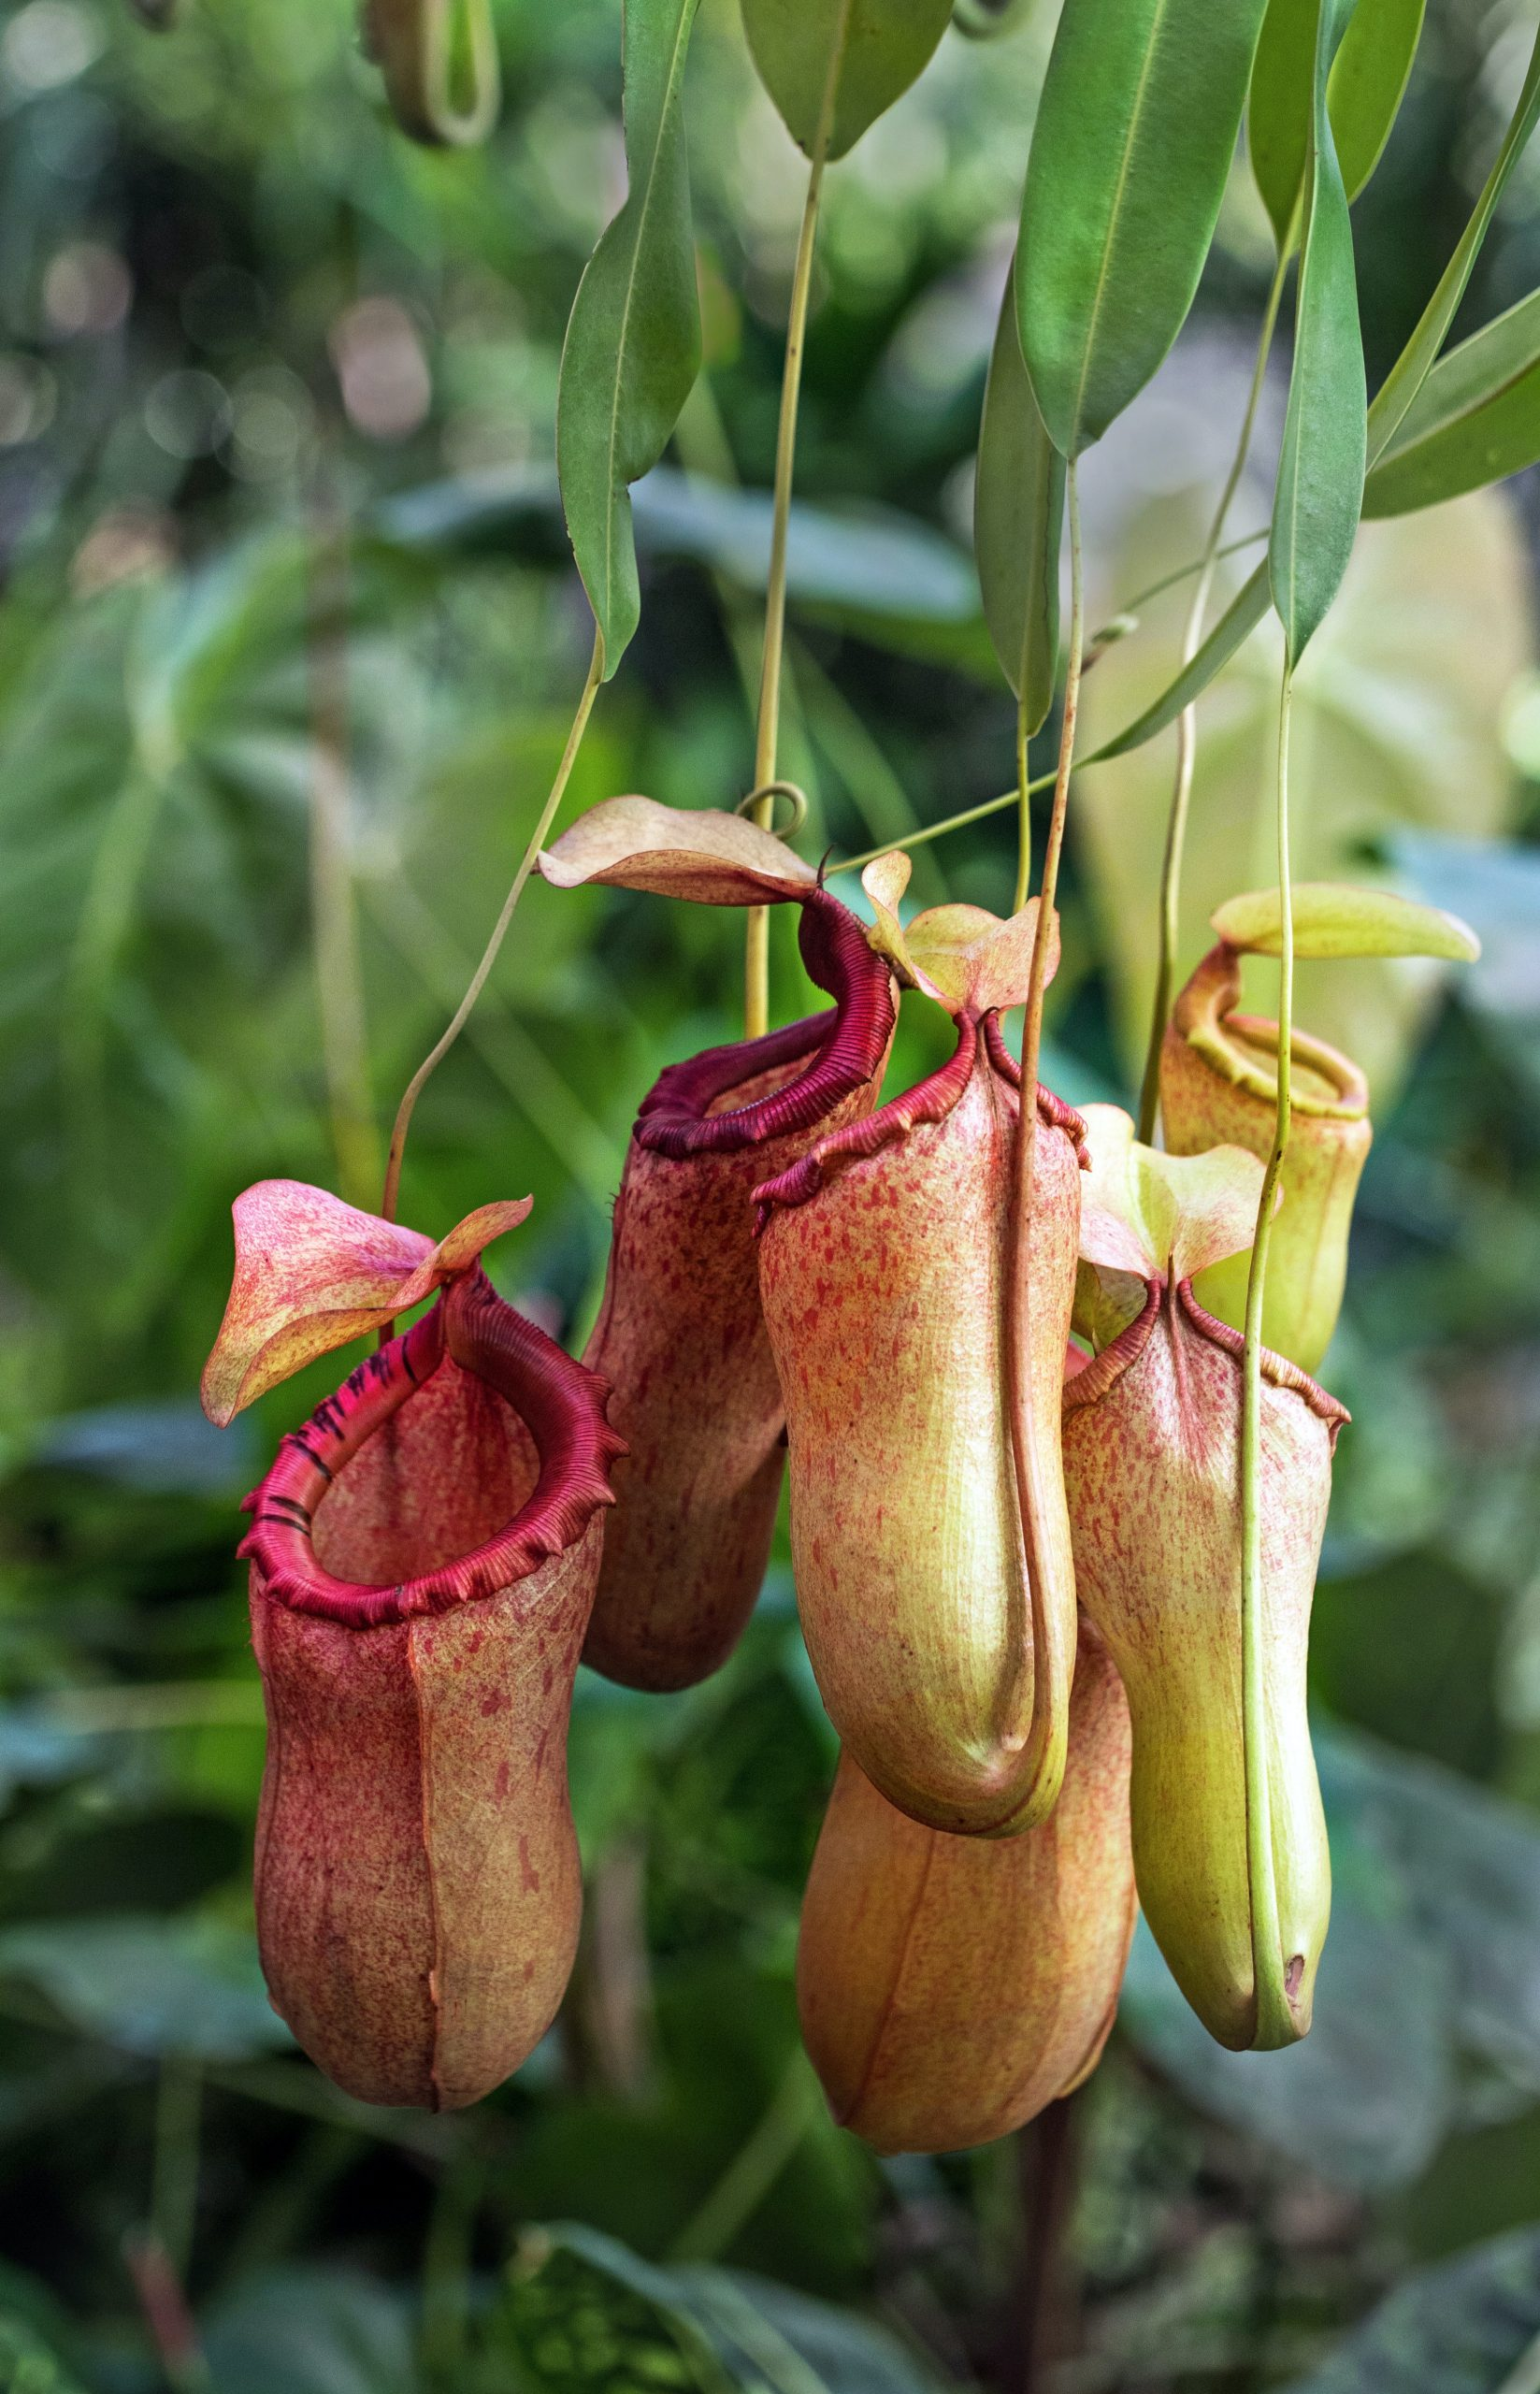 Pitcher plants are one of the most unique looking garden plants out there. High carnivorous, these plants are great for controlling pests like insects and bugs. Learn how to care for your own pitcher plant with this great Pitcher plant guide.